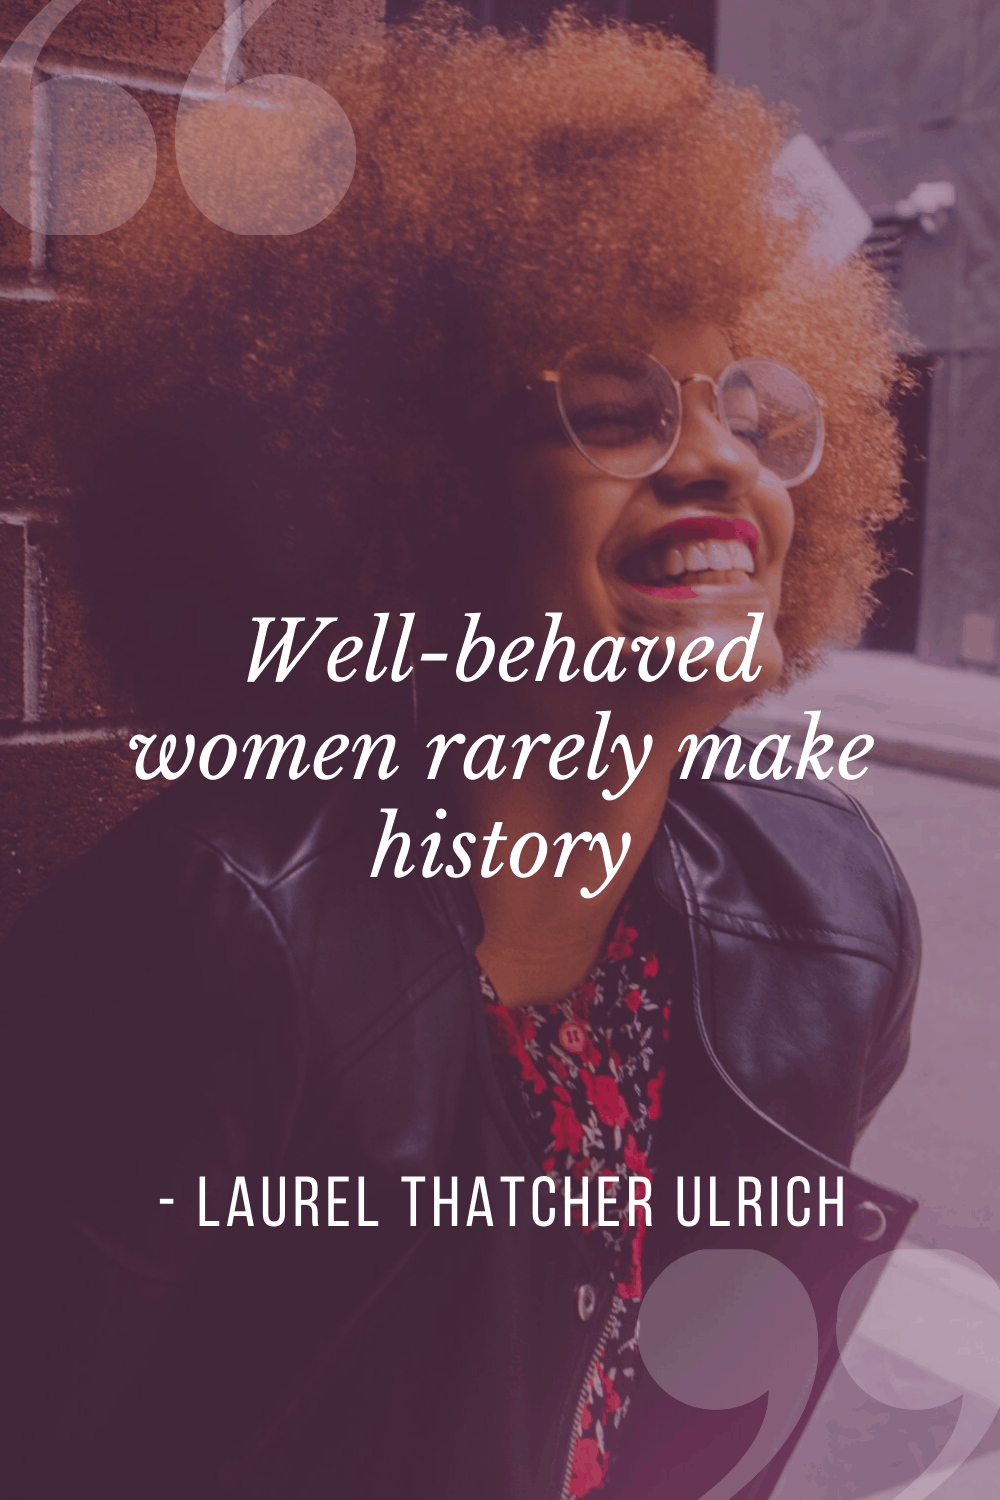 """Well-behaved women rarely make history"", Laurel Thatcher Ulrich"